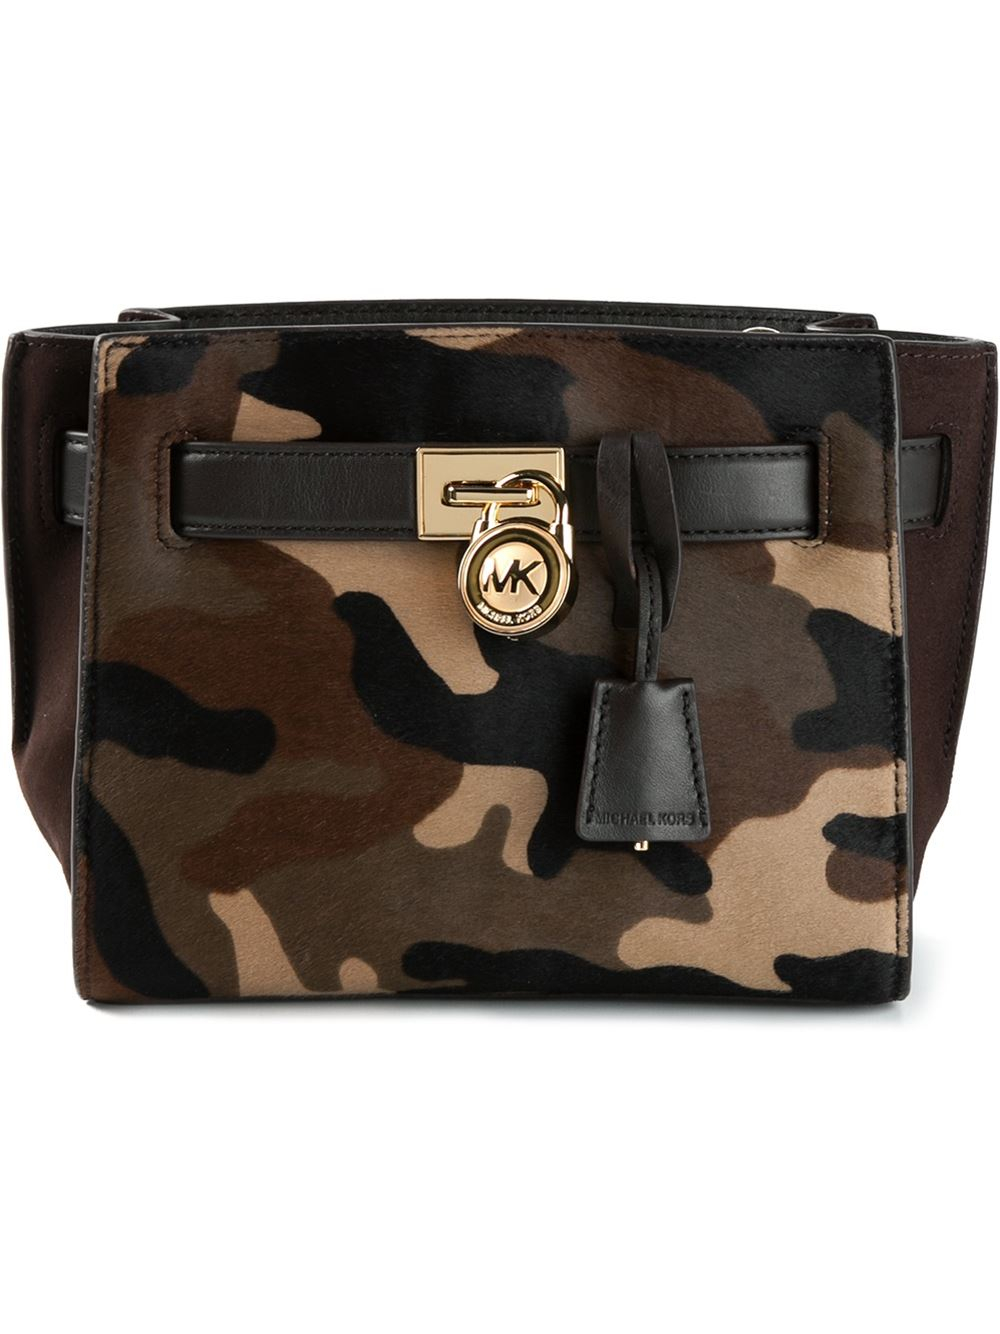 cf13735754d4 Gallery. Previously sold at: Farfetch · Women's Michael By Michael Kors  Hamilton